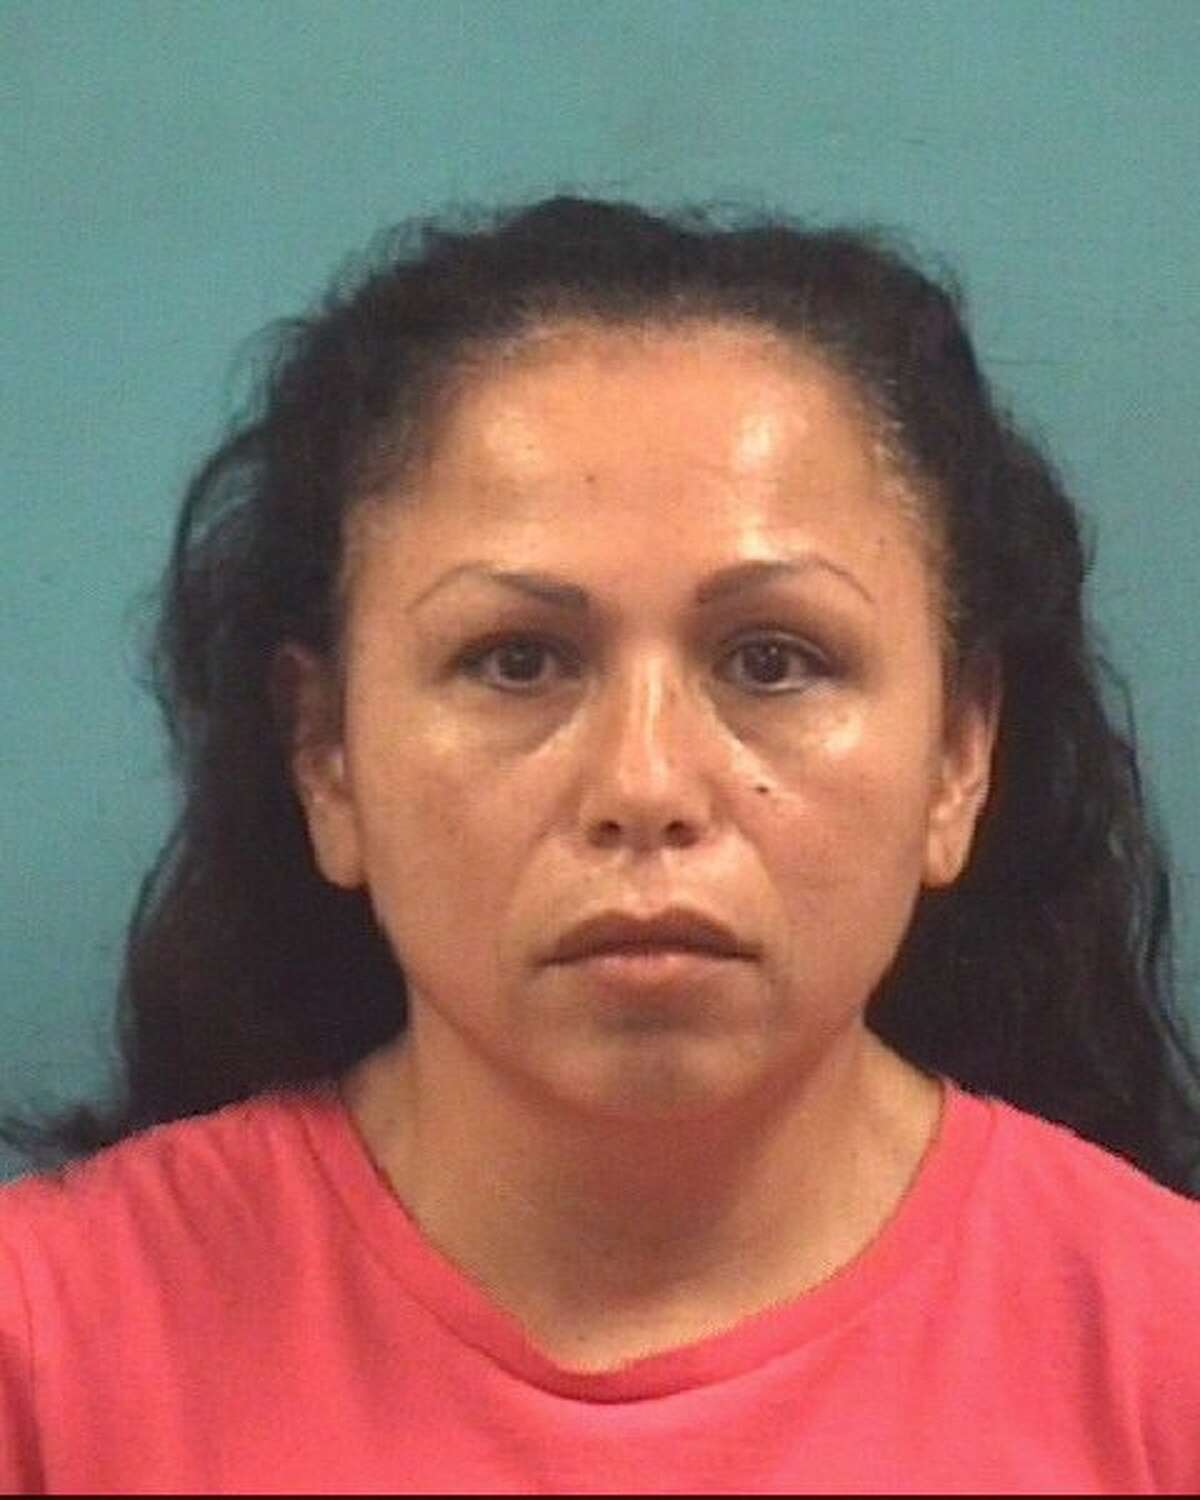 Floribeth Sandoval-Benjume was charged Tuesday with manslaughter in the death of HCSO Sgt. Bruce Watson, police said.